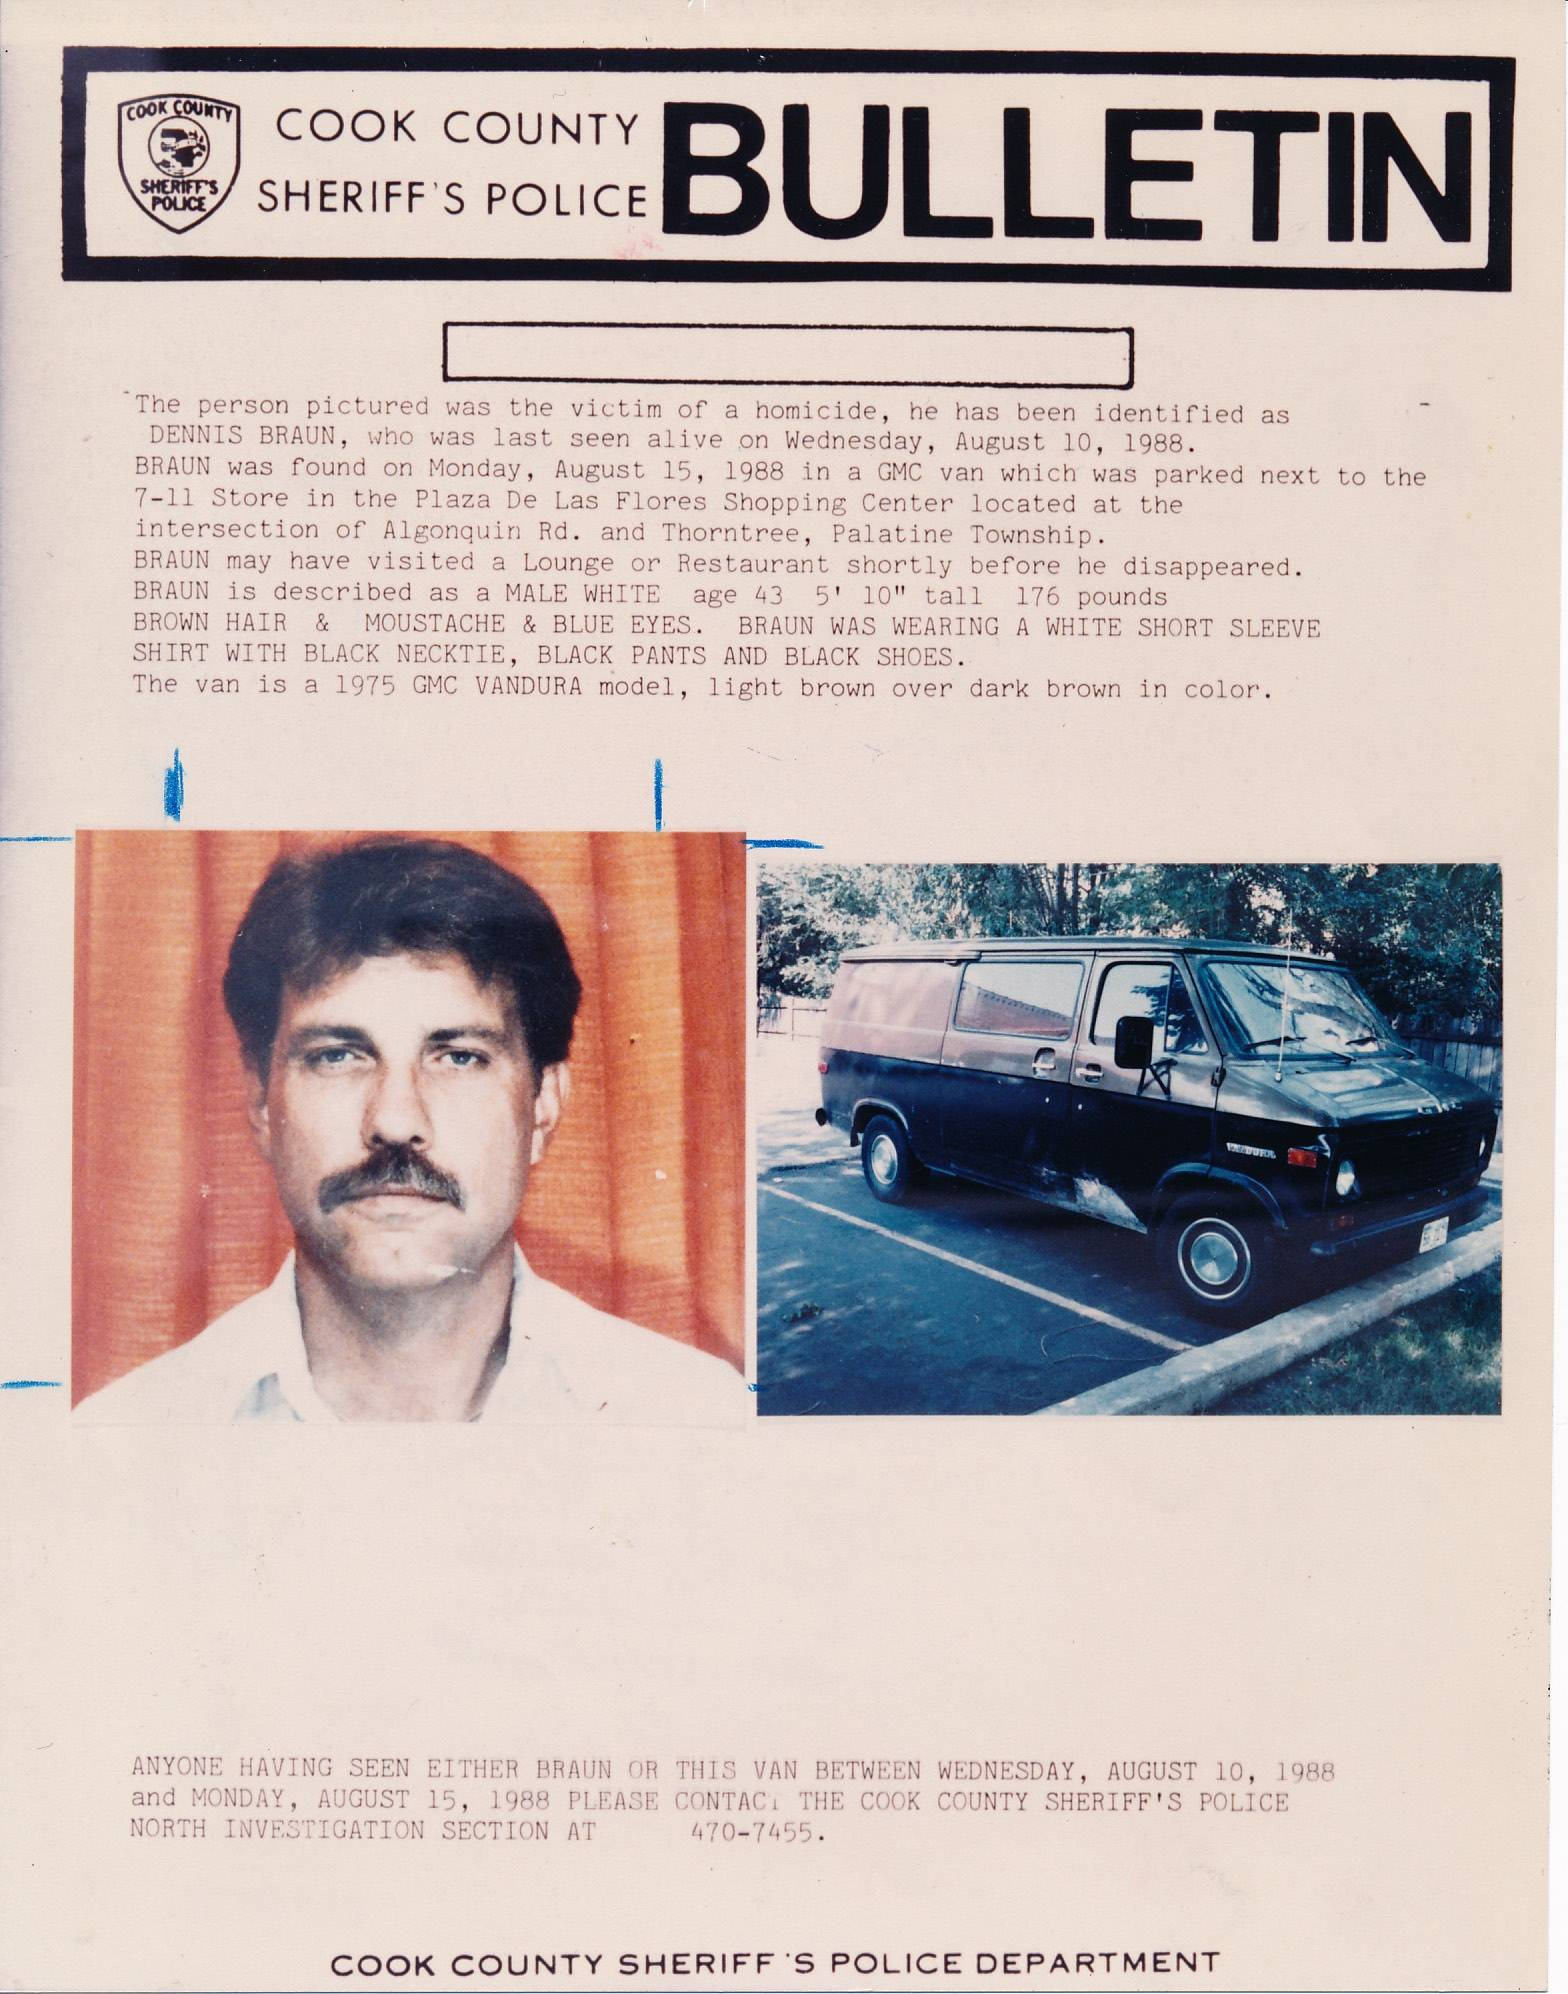 A poster from the Cook County Sheriff's Office describing the 1988 slaying of Dennis Braun in Palatine Township. The case remains unsolved.